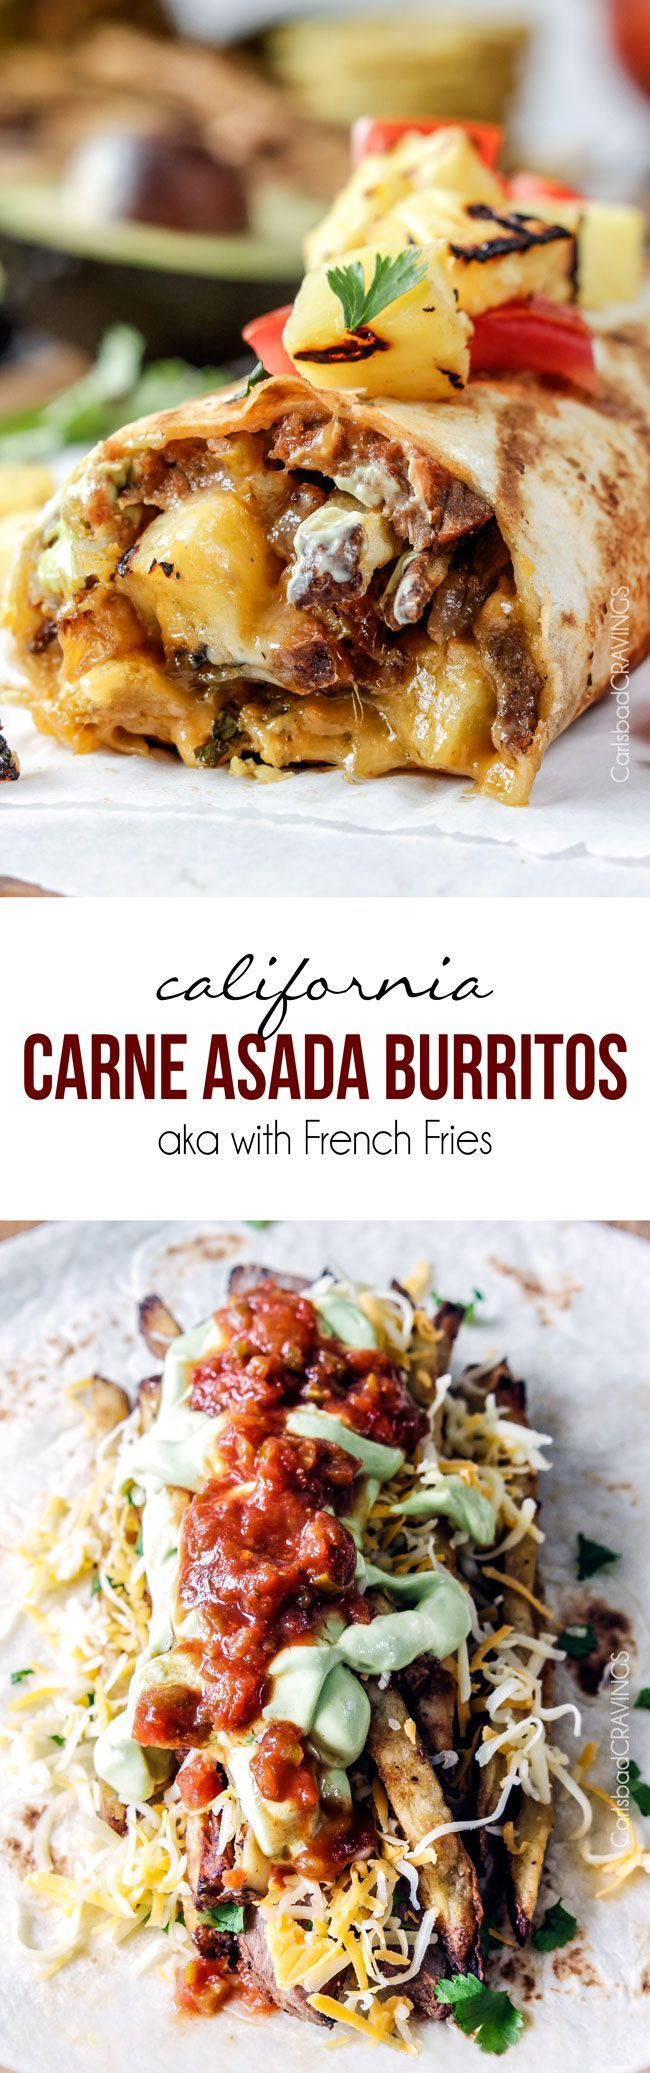 Better than takeout California Carne Asada Burritos stuffed with thinly sliced, tender marinated Carne Asada, cheese, salsa, avocado crema (pineapple optional) and the best part - Mexican French Fries!!! so easy, great for crowds at a fraction of the cost